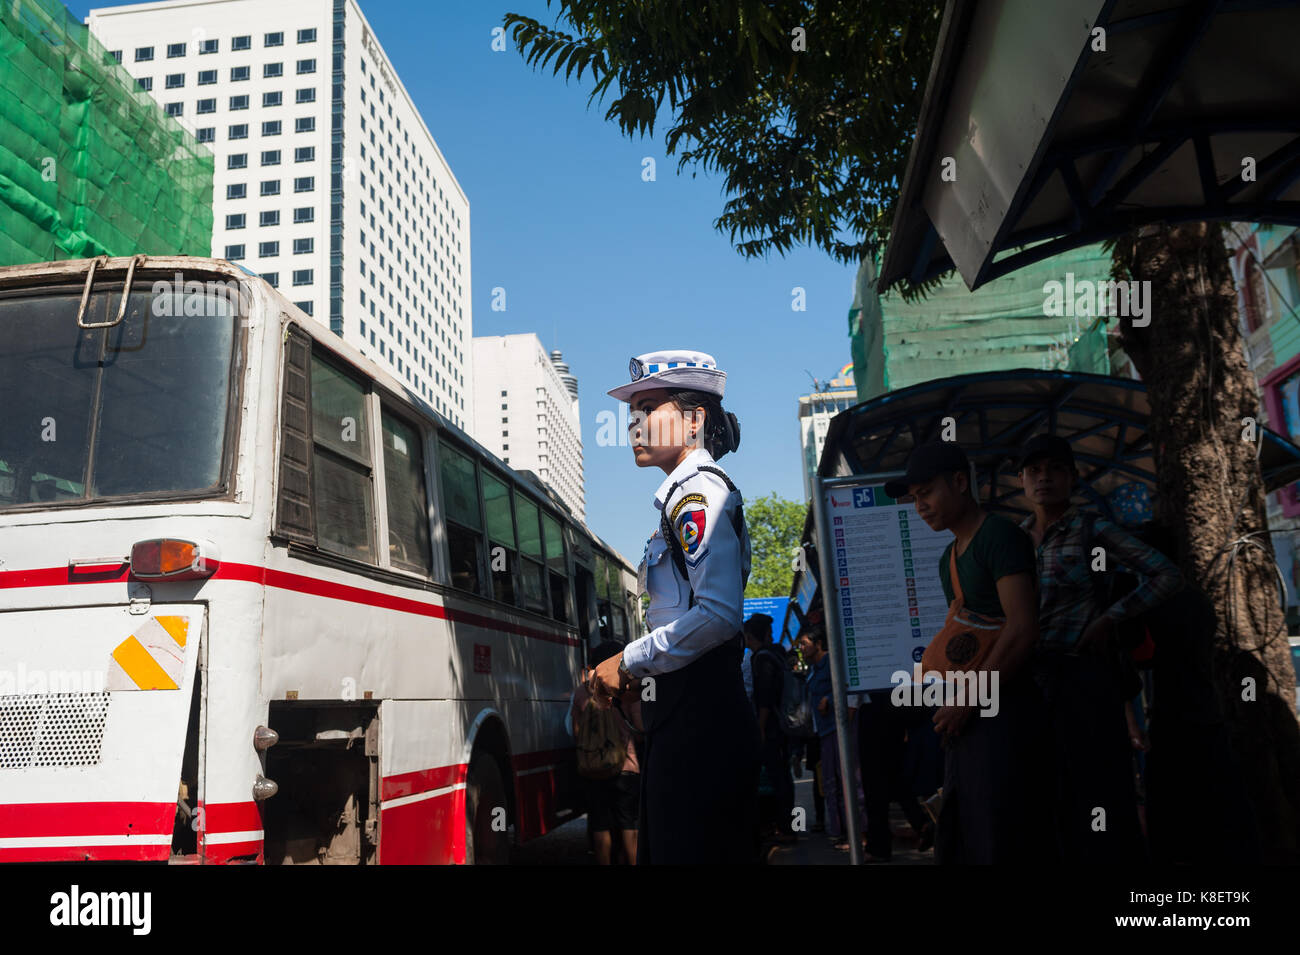 27.01.2017, Yangon, Yangon Region, Republic of the Union of Myanmar, Asia - A female traffic police officer stands - Stock Image